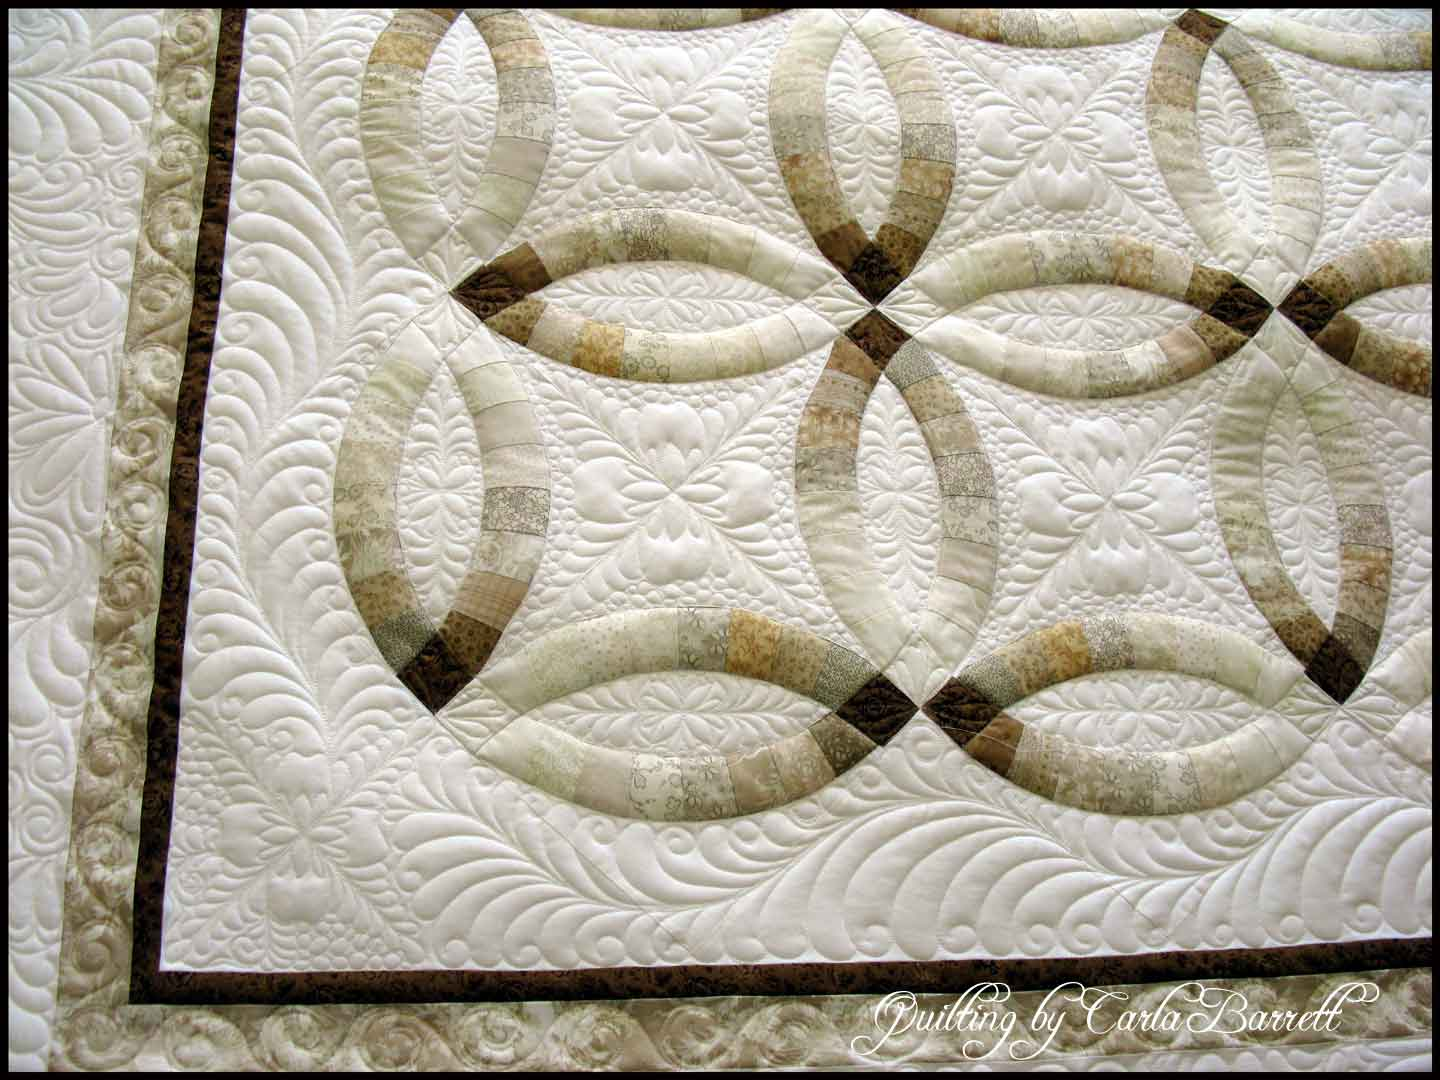 Finished Wedding Ring Quilt Carla Barrett